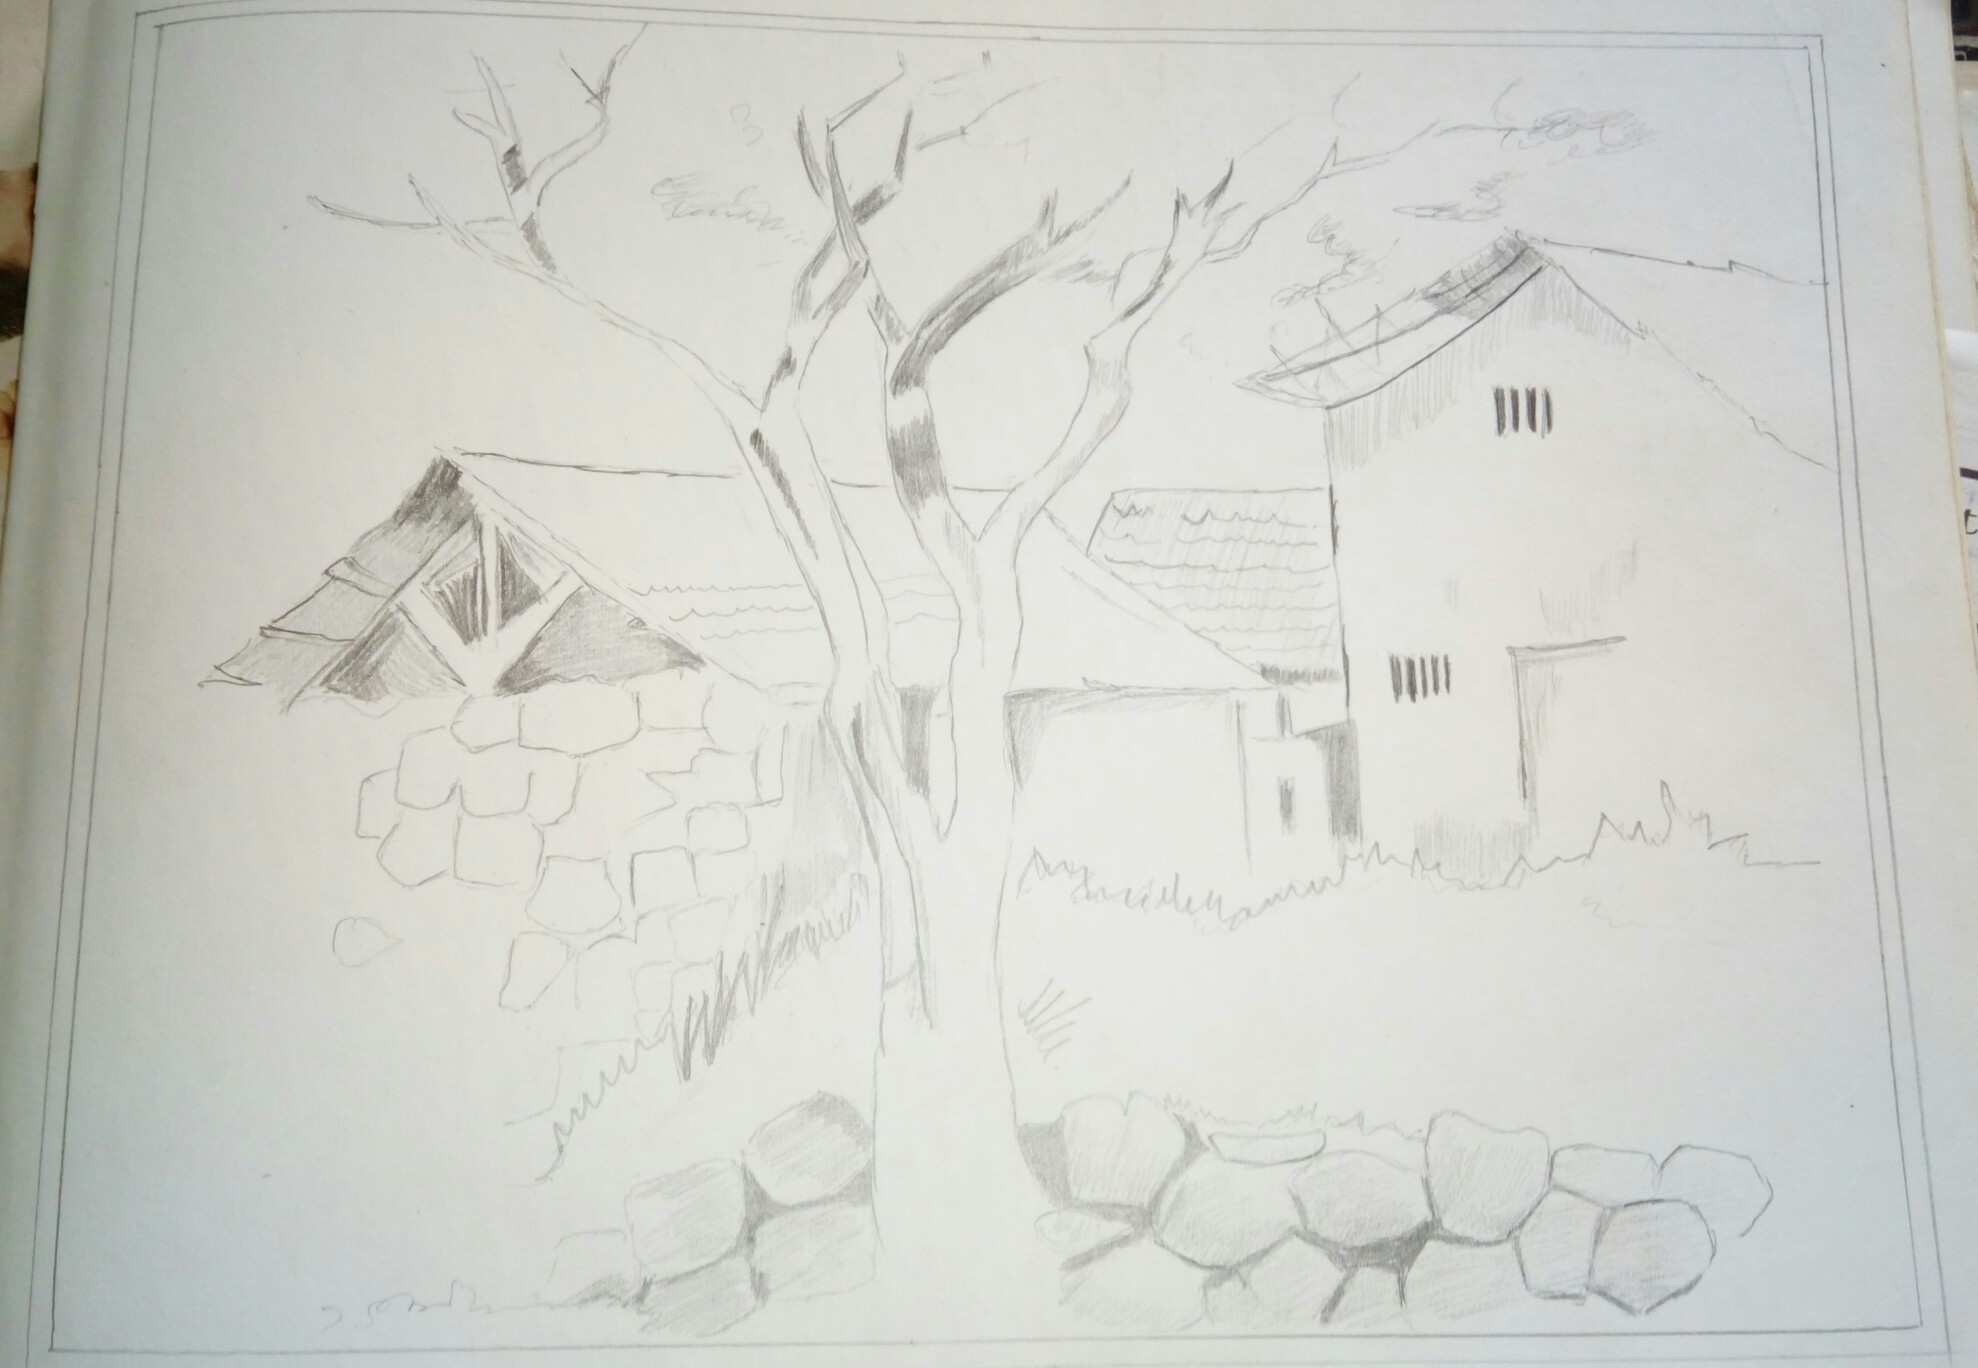 This is a scenery of a village. I have found this picture in a cover of a drawing exercise book. I have tried to recreate it in my own way. Only HB pencil has been used in the picture.